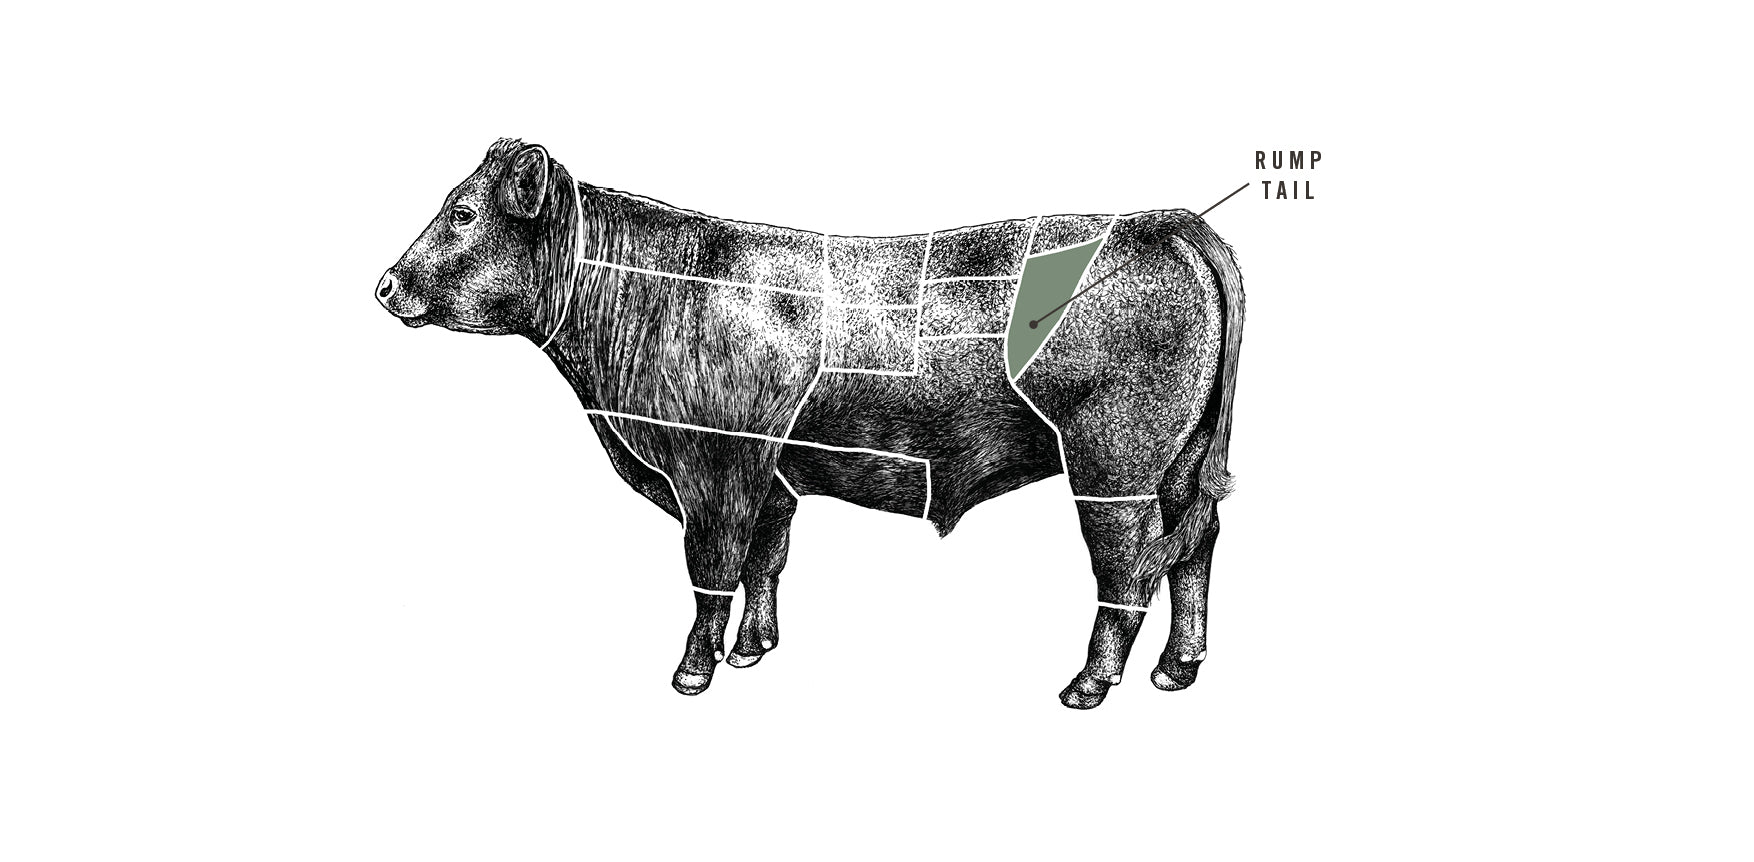 Grass Fed Beef Rump Tail meat cuts diagram